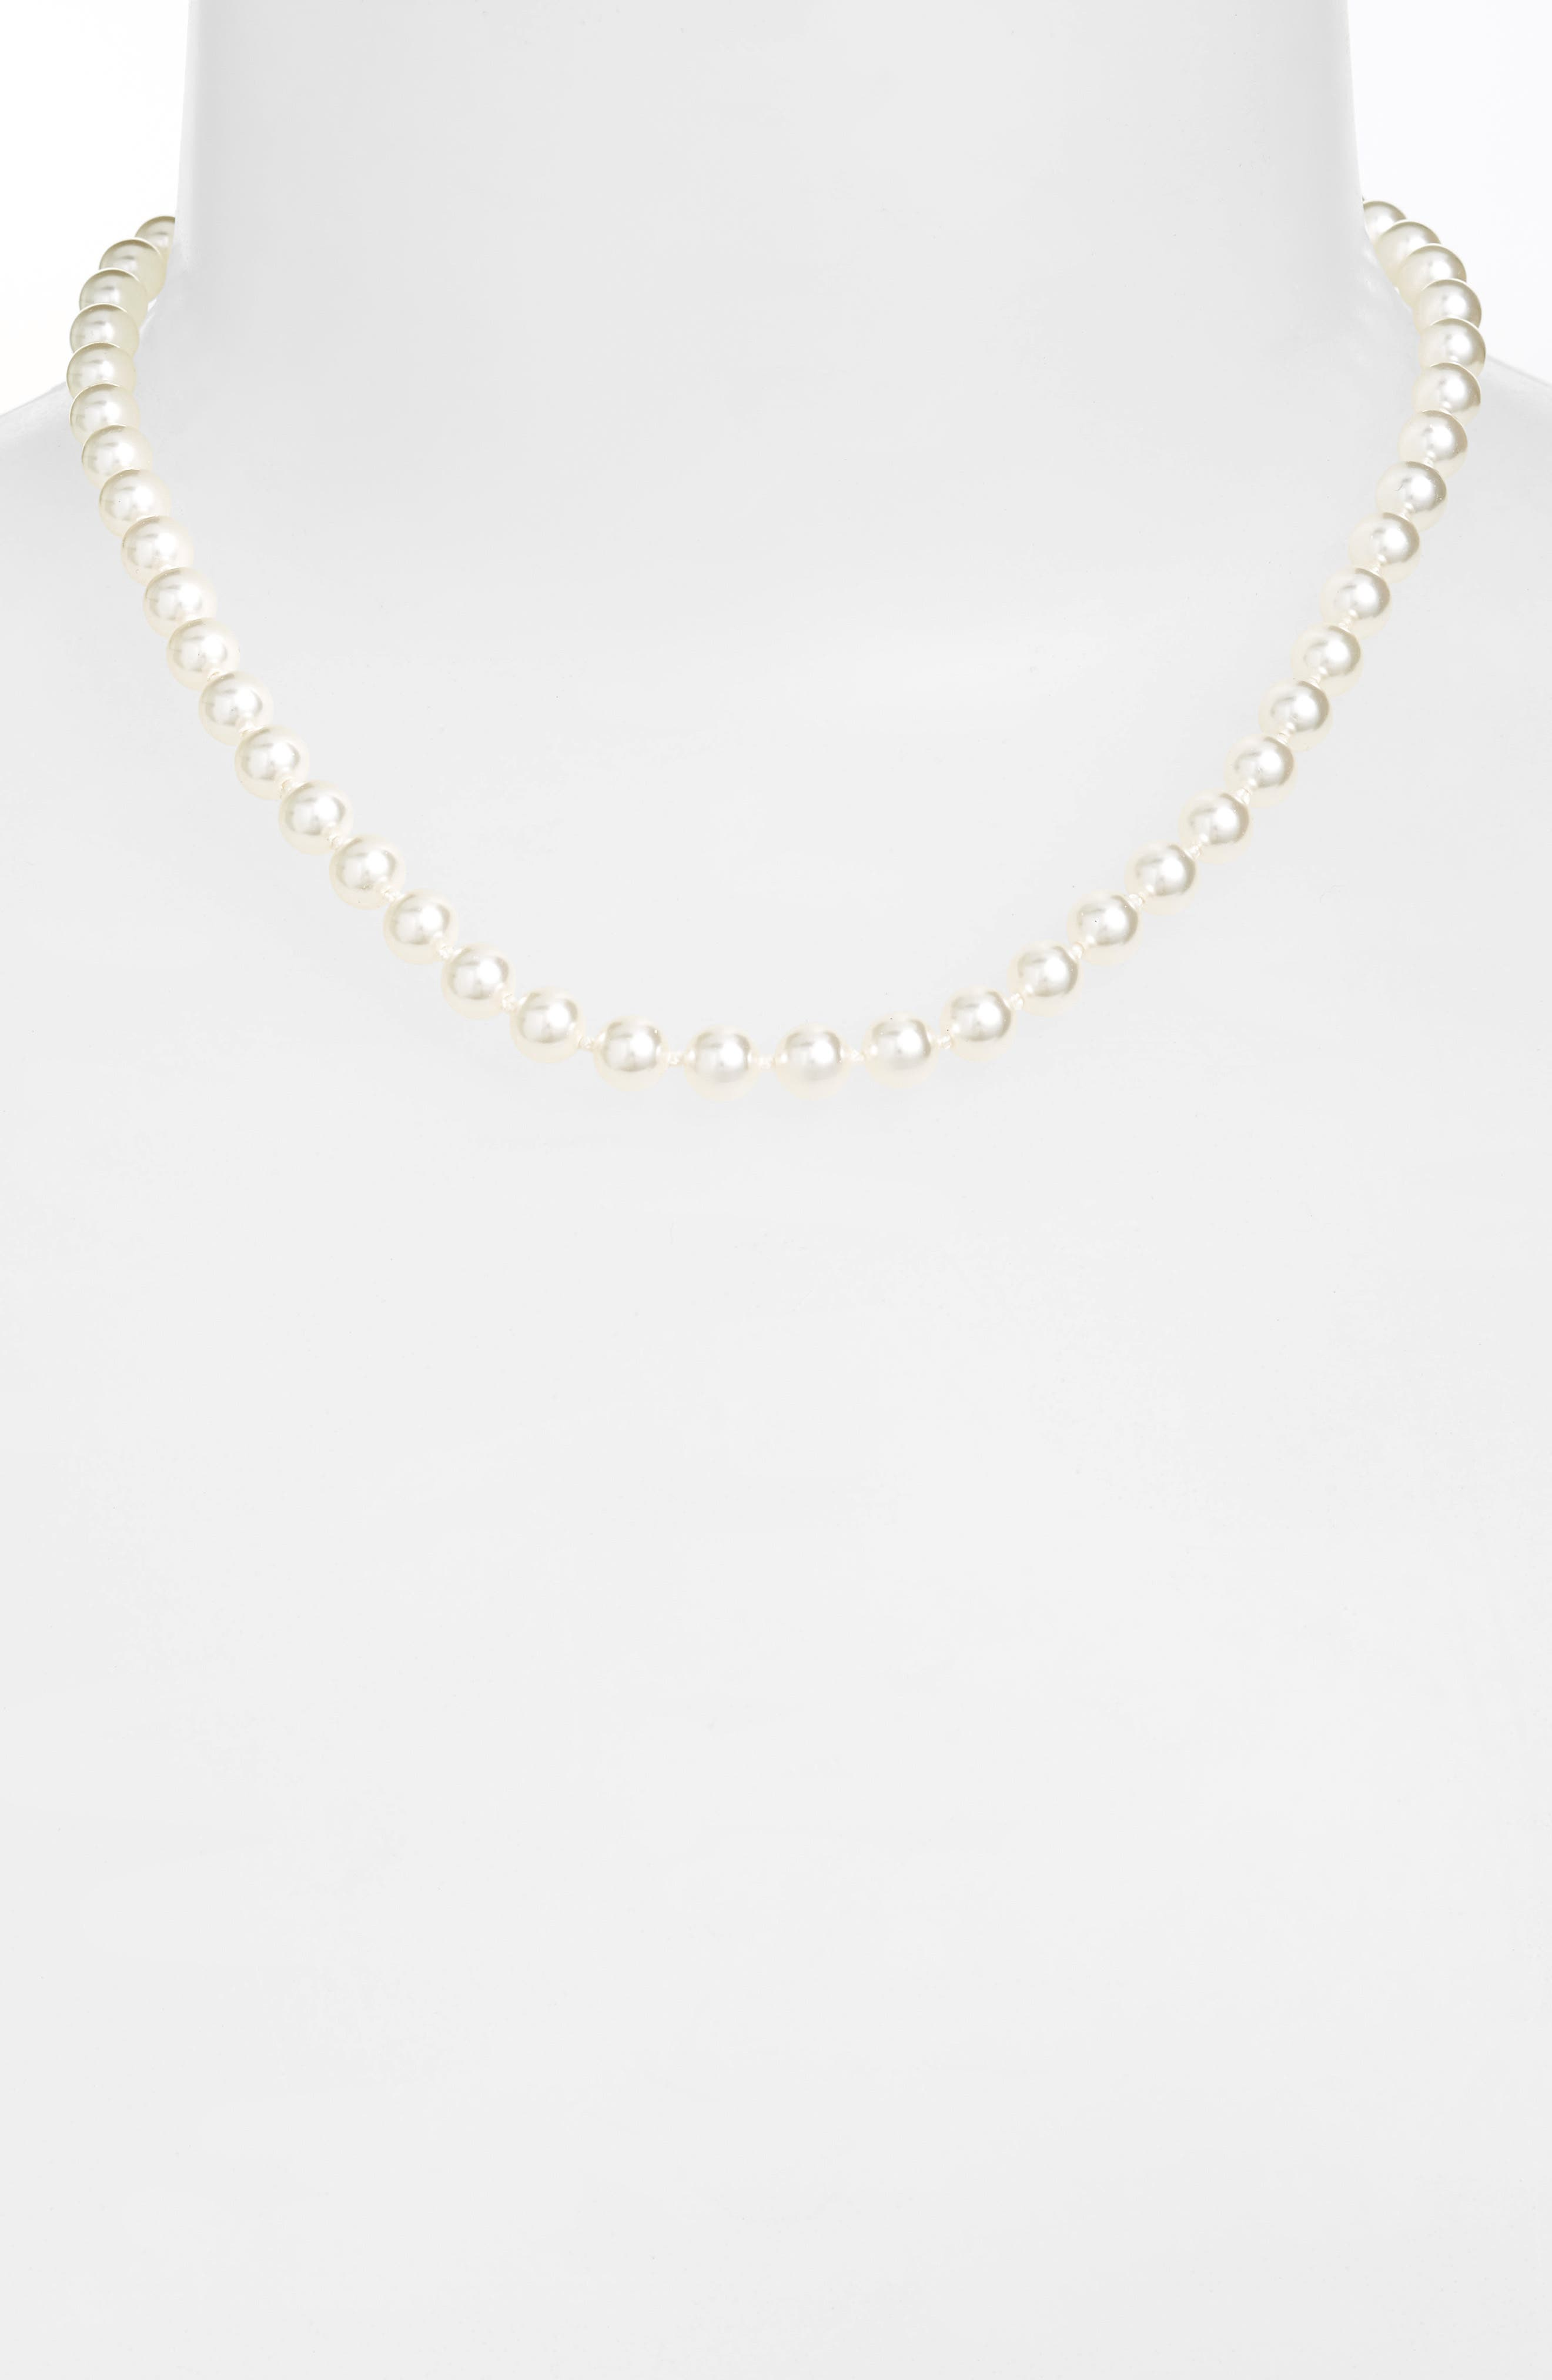 16-Inch Glass Pearl Strand Necklace,                             Main thumbnail 1, color,                             WHITE PEARL